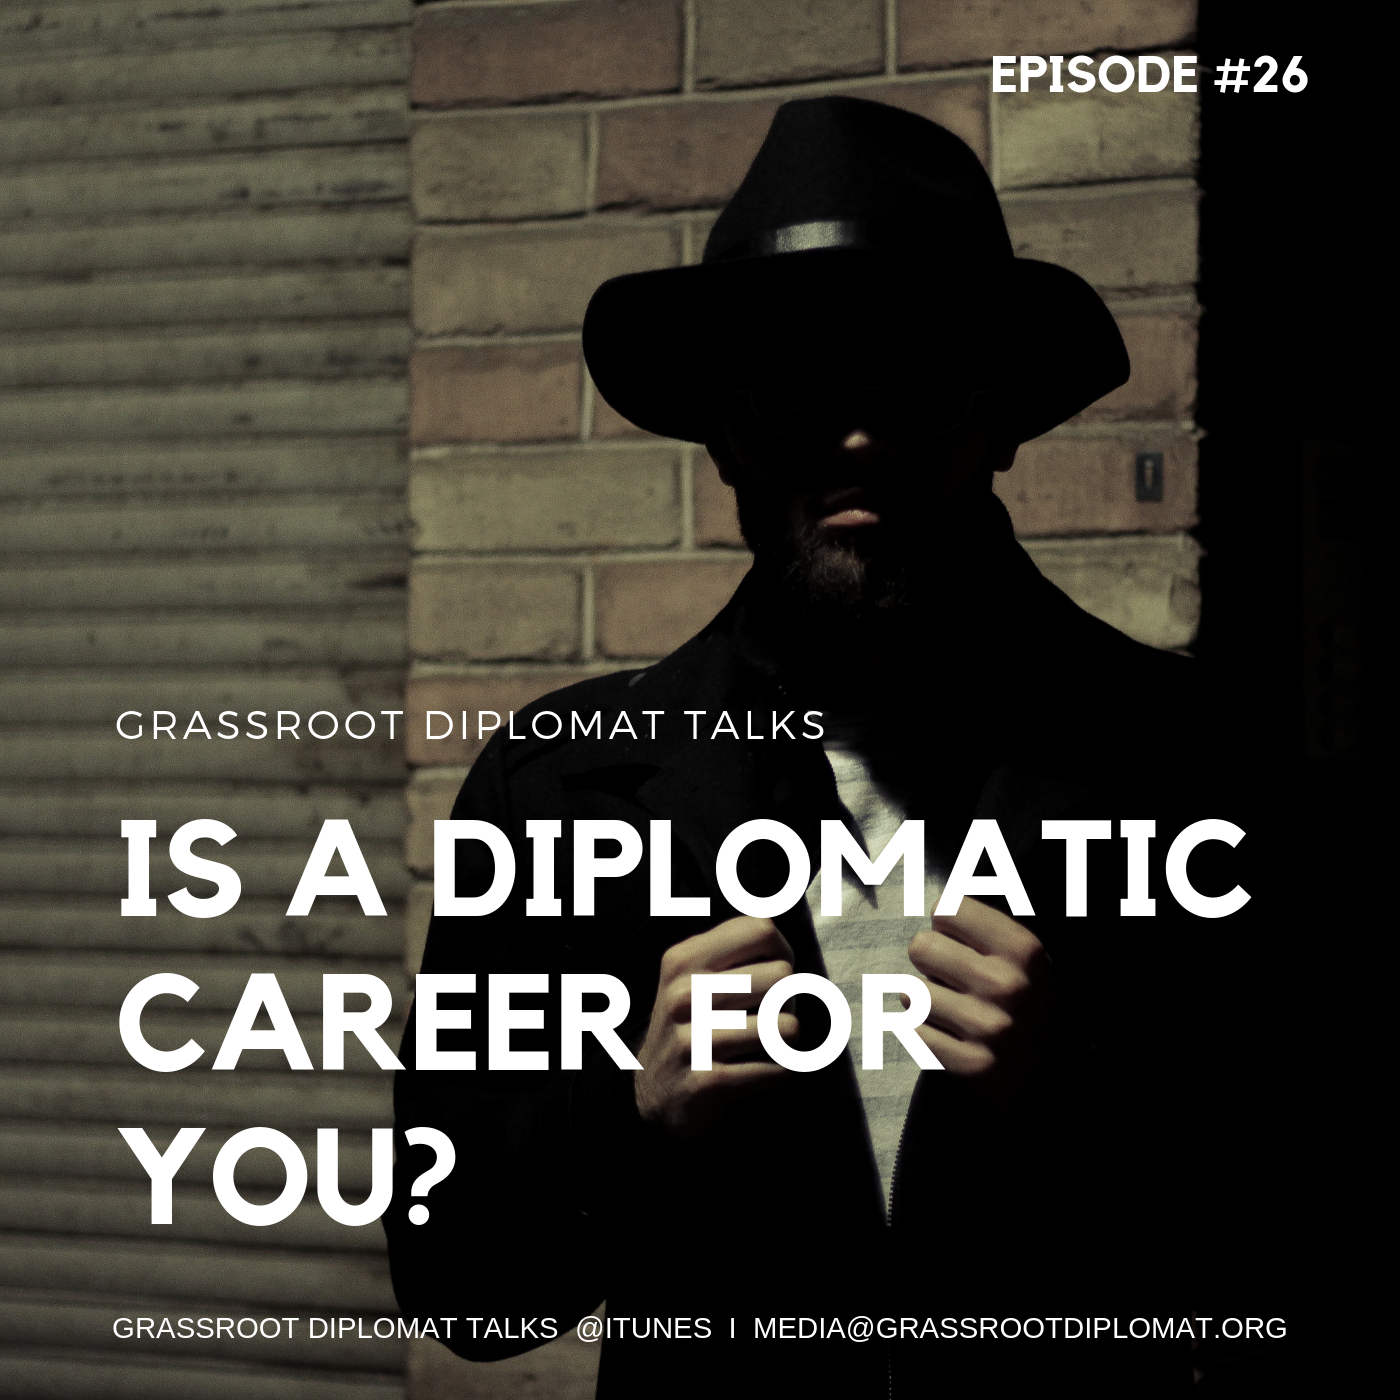 Is a Diplomatic Career for you?